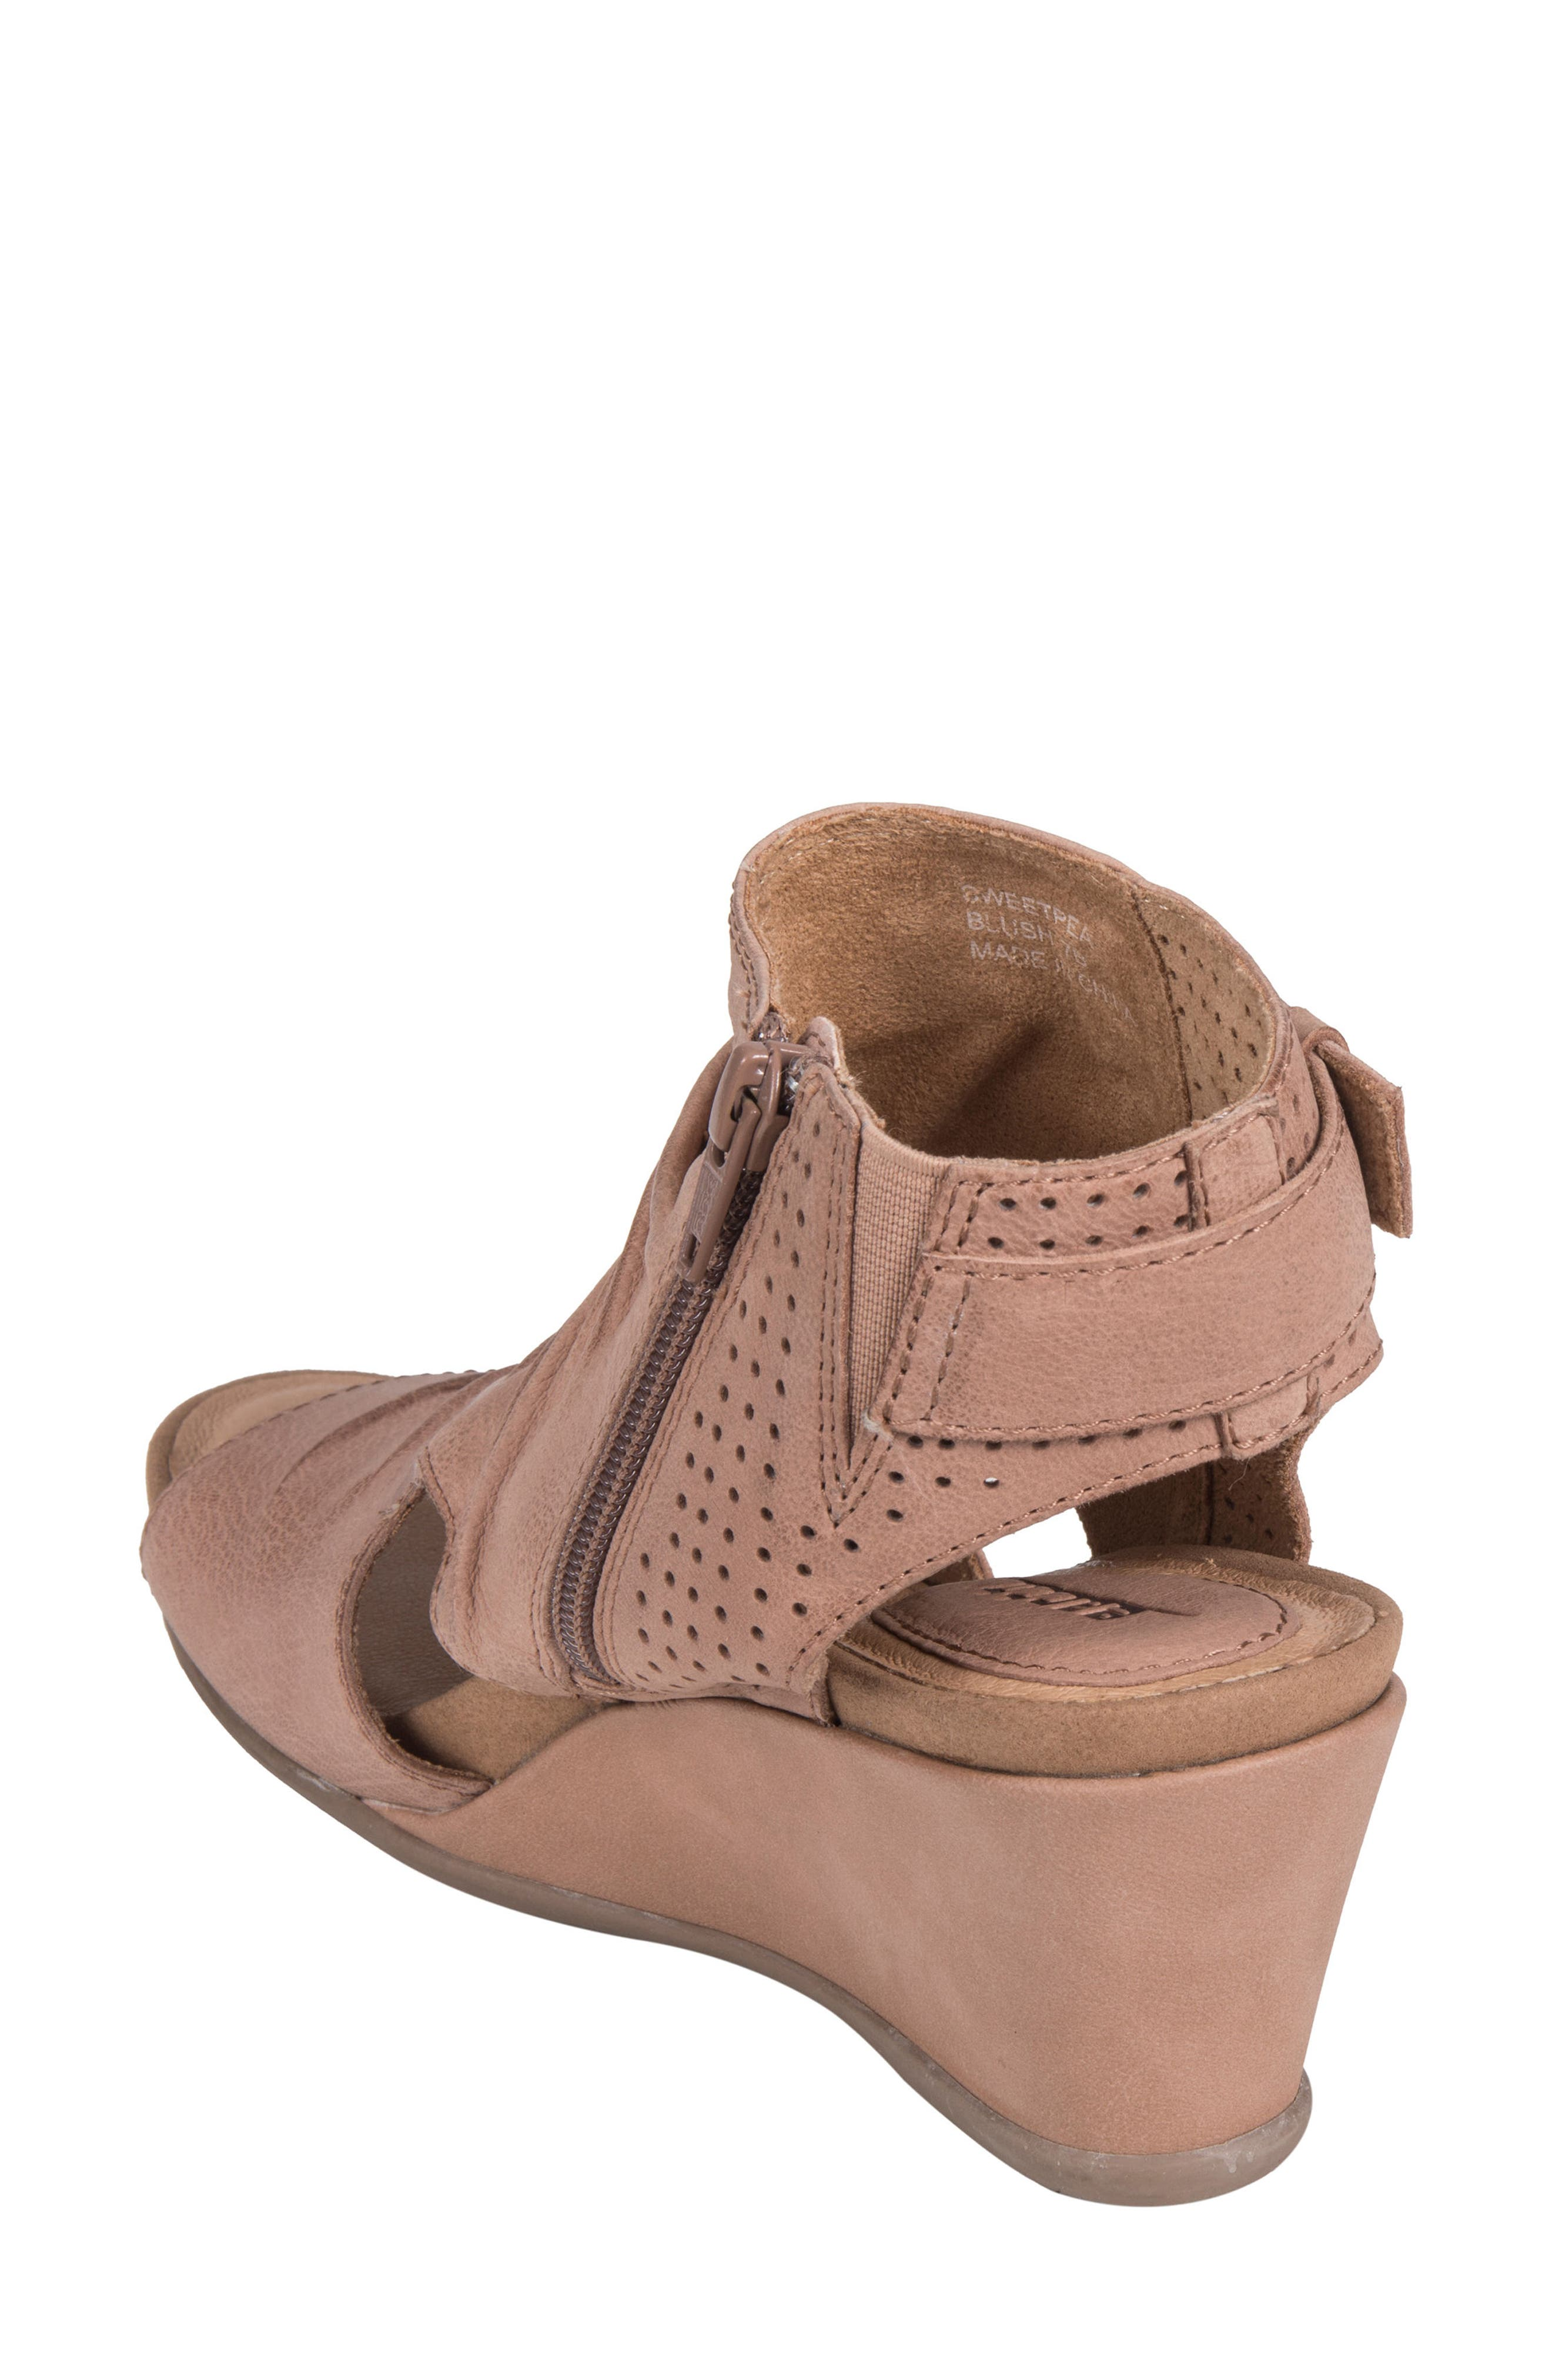 Sweetpea Wedge,                             Alternate thumbnail 8, color,